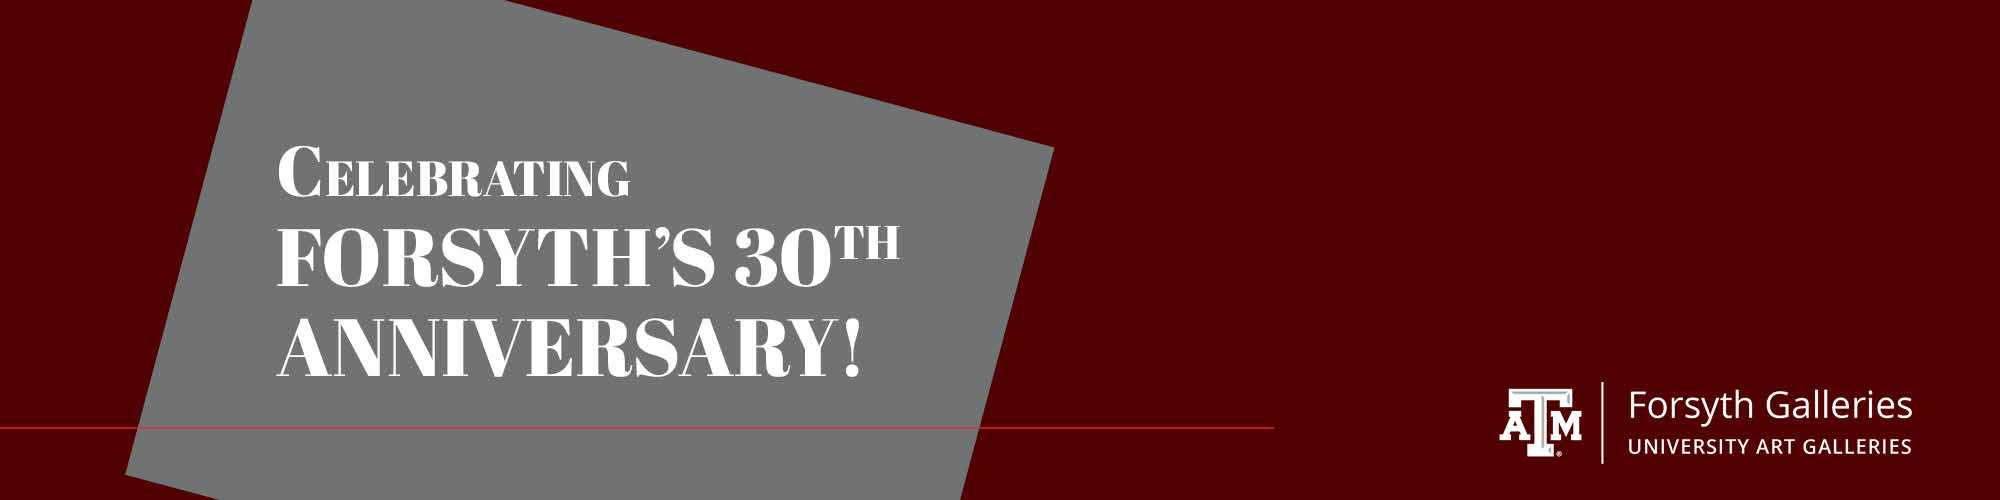 """Maroon background, gray box with white text that reads """"Celebrating Forsyth's 30th Anniversary!"""" Forsyth logo in bottom right corner"""